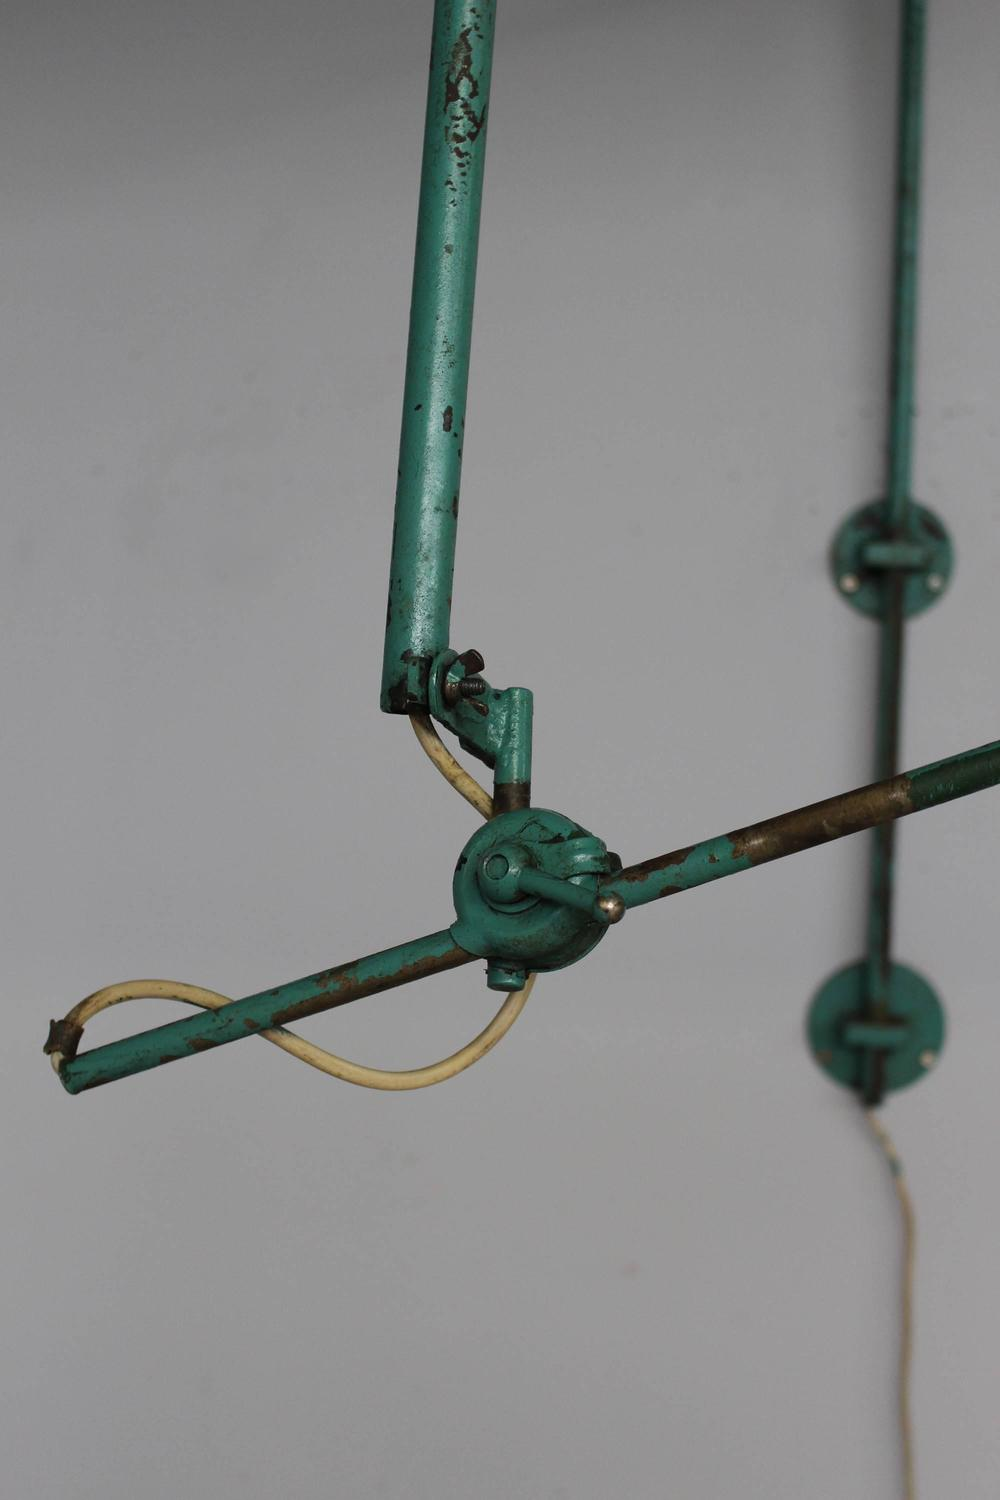 French Adjustable Industrial Green Lacquered Metal Wall Light For Sale at 1stdibs